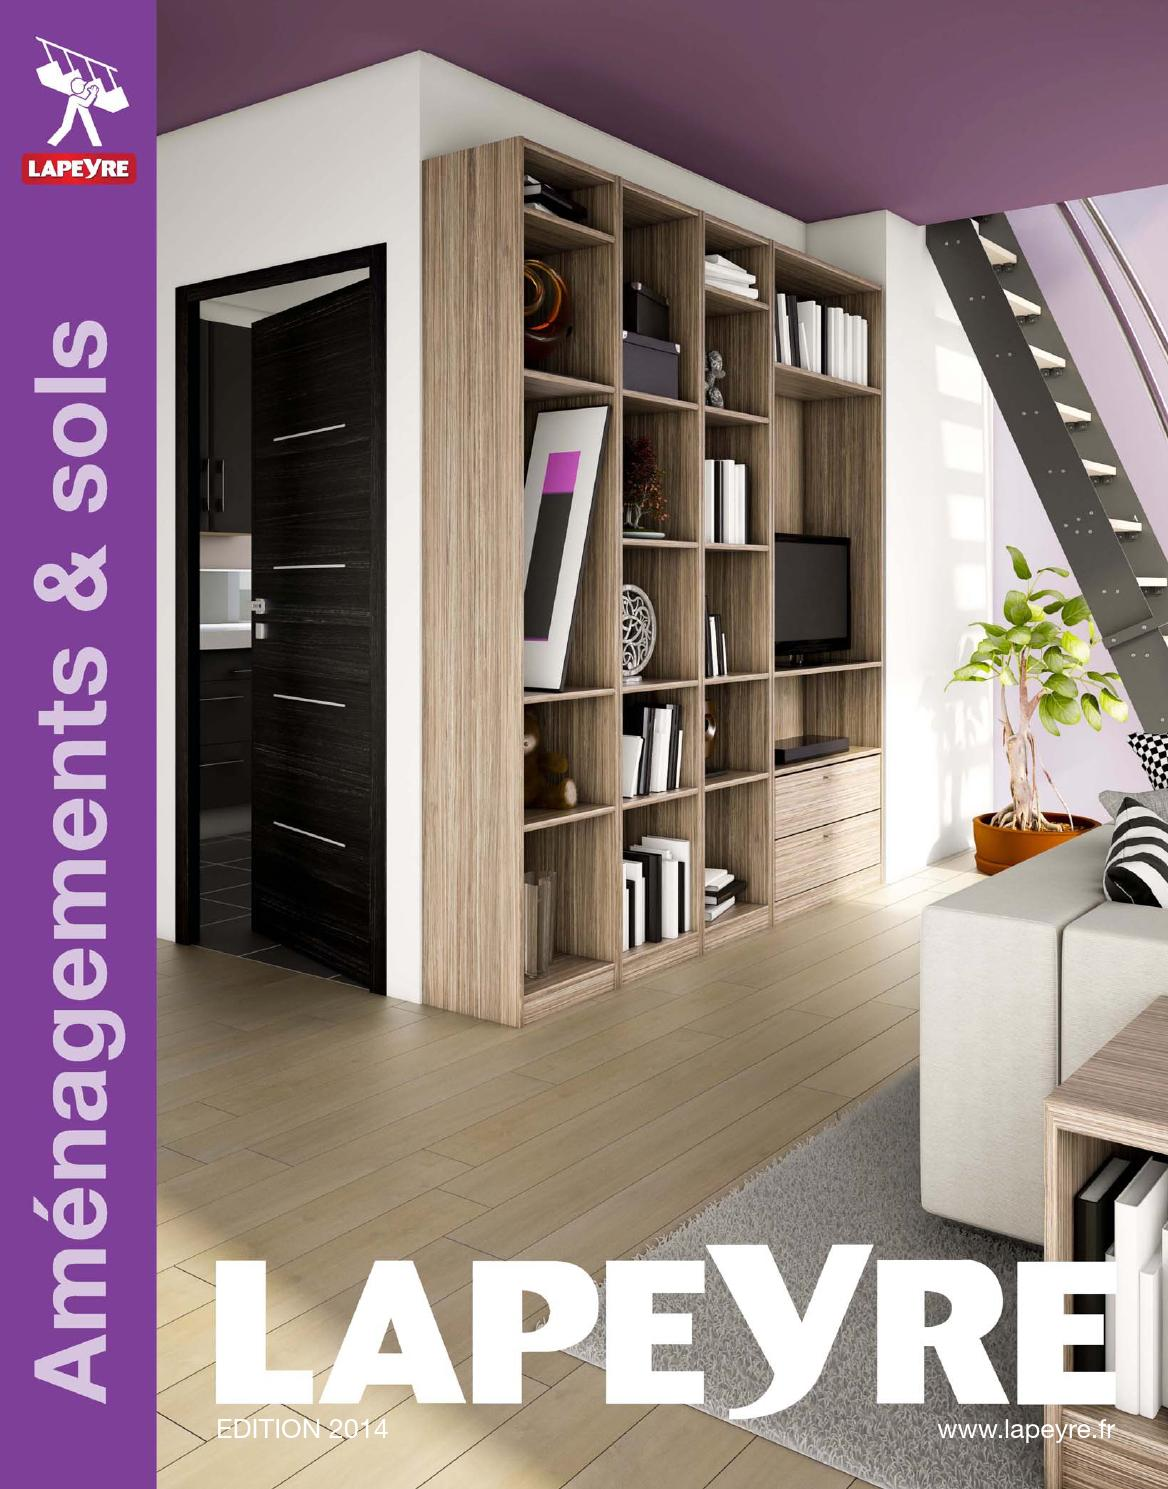 Dressing Lapeyre Espace Catalogue Lapeyre Aménagements And Sols 2014 By Joe Monroe